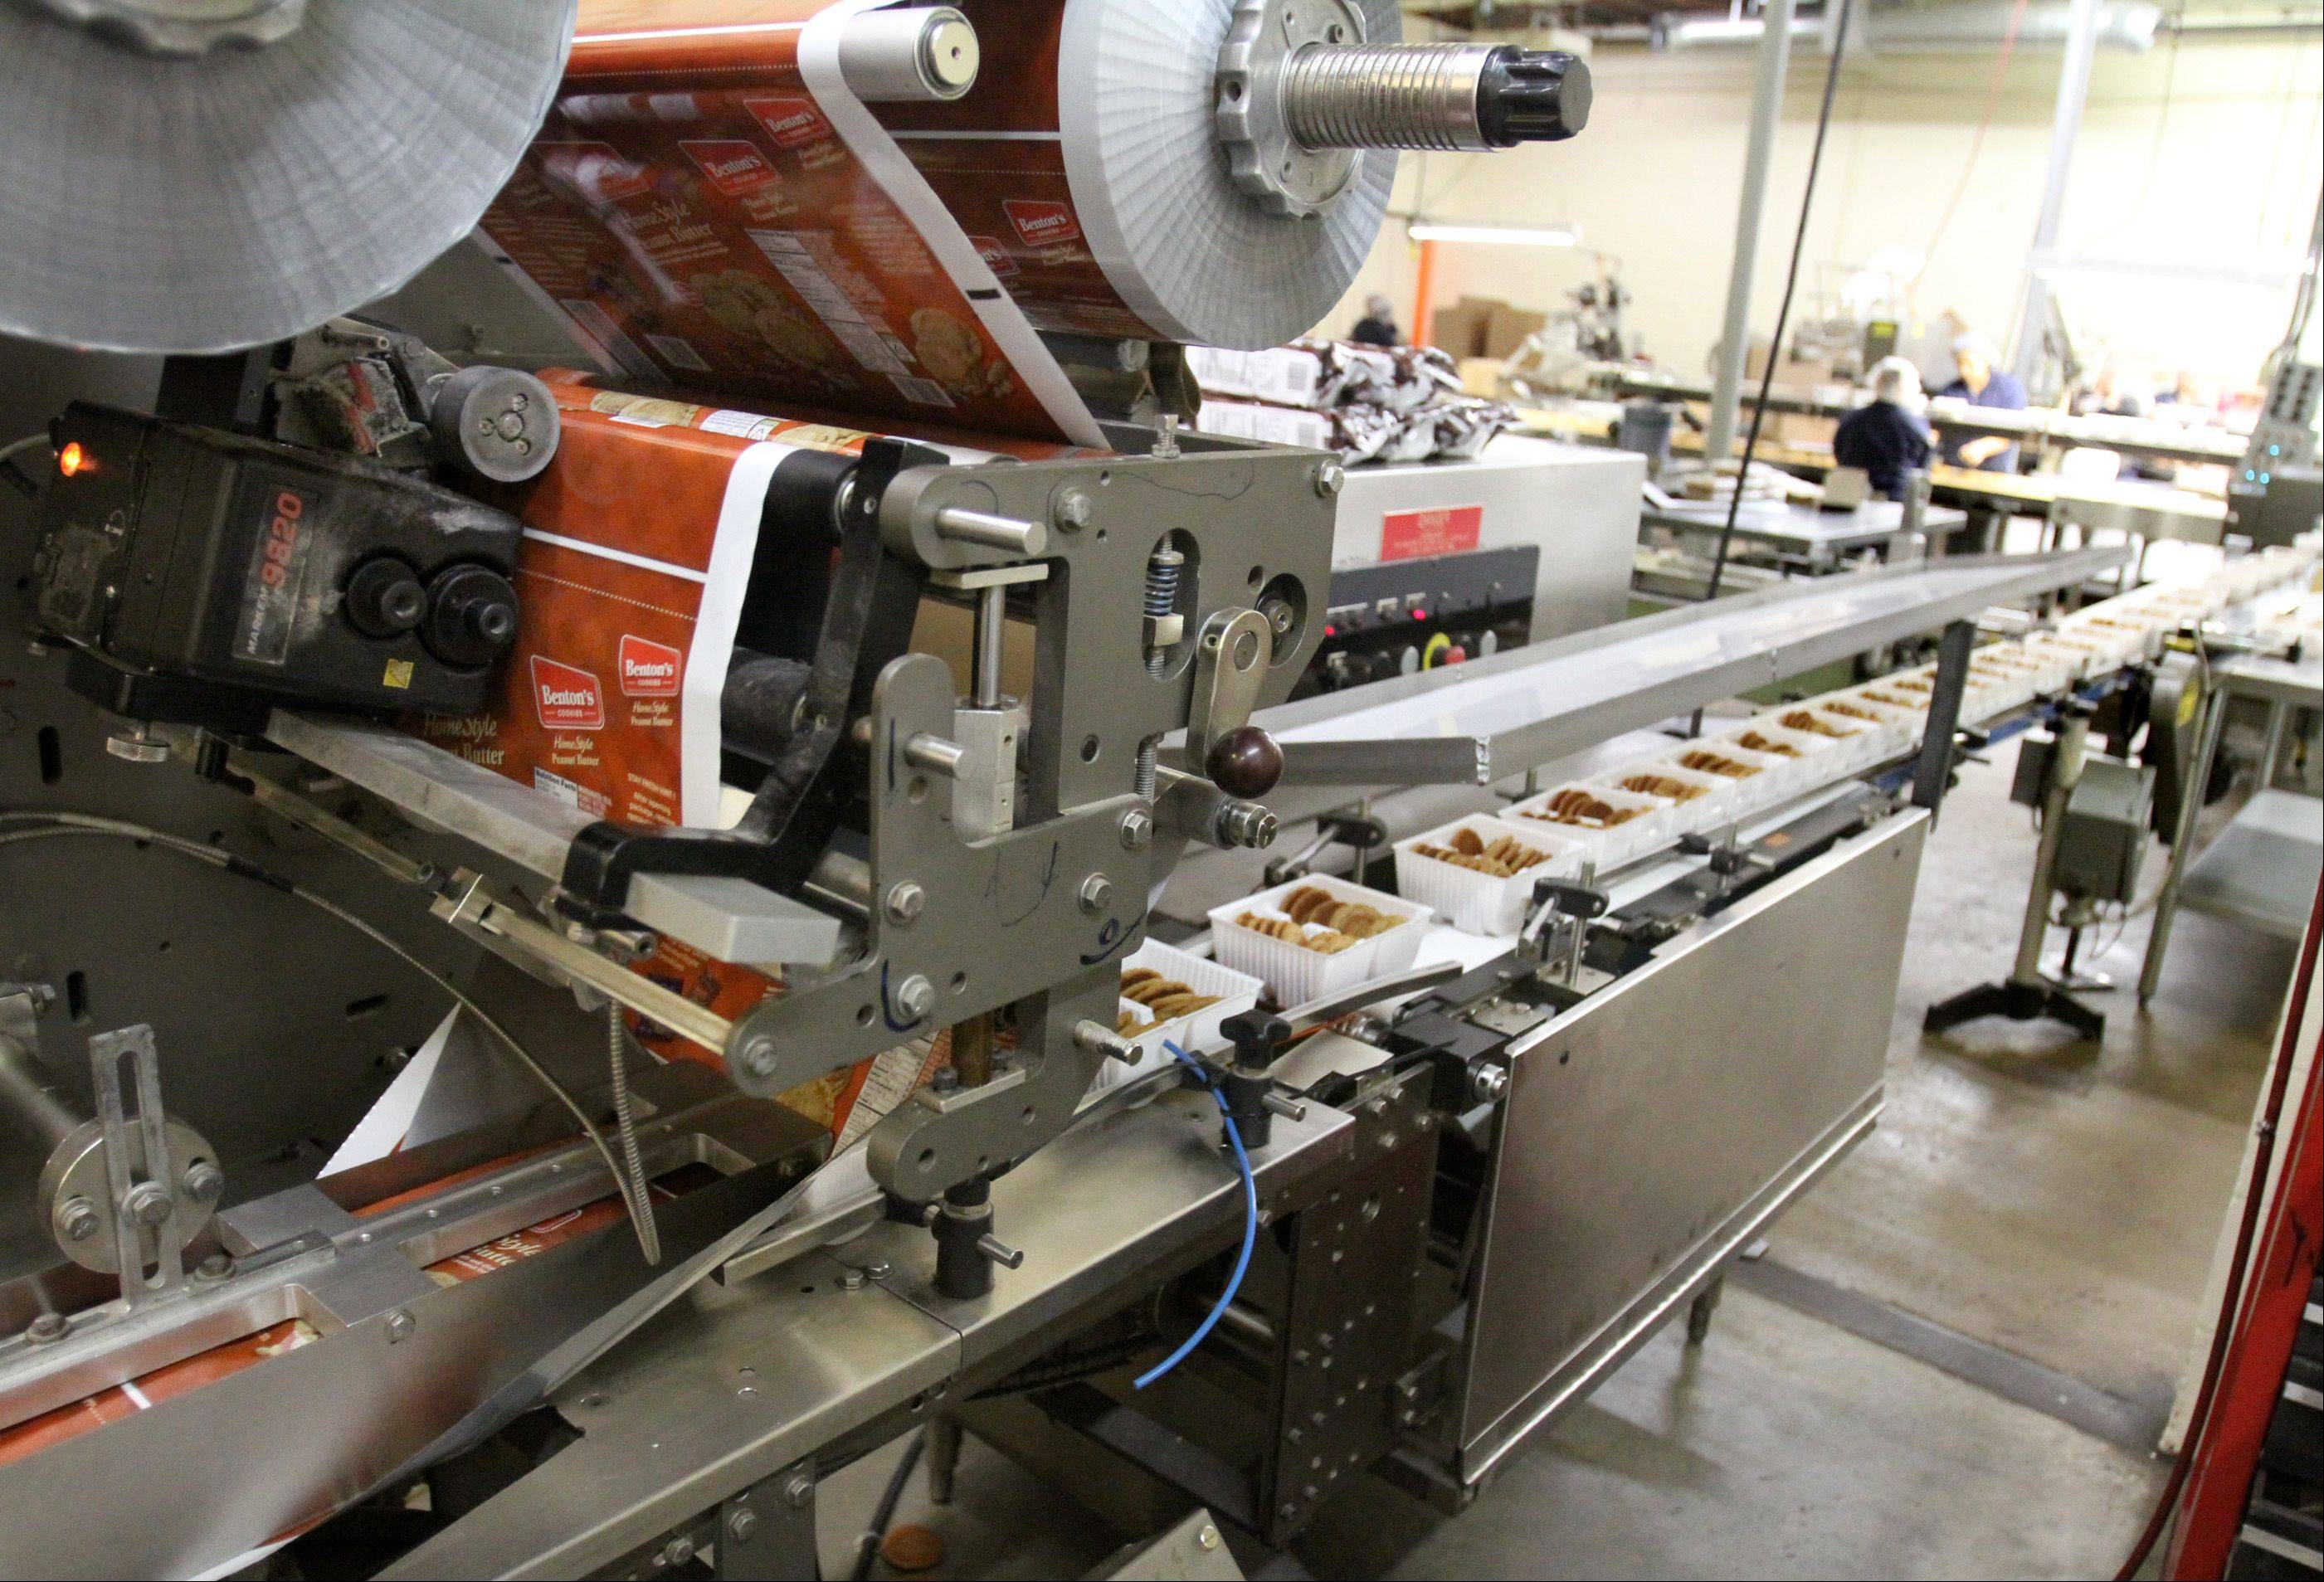 A machine wraps some of the 25,000-pounds of cookies packaged each day, including cookies under different brand names shown on labels here.